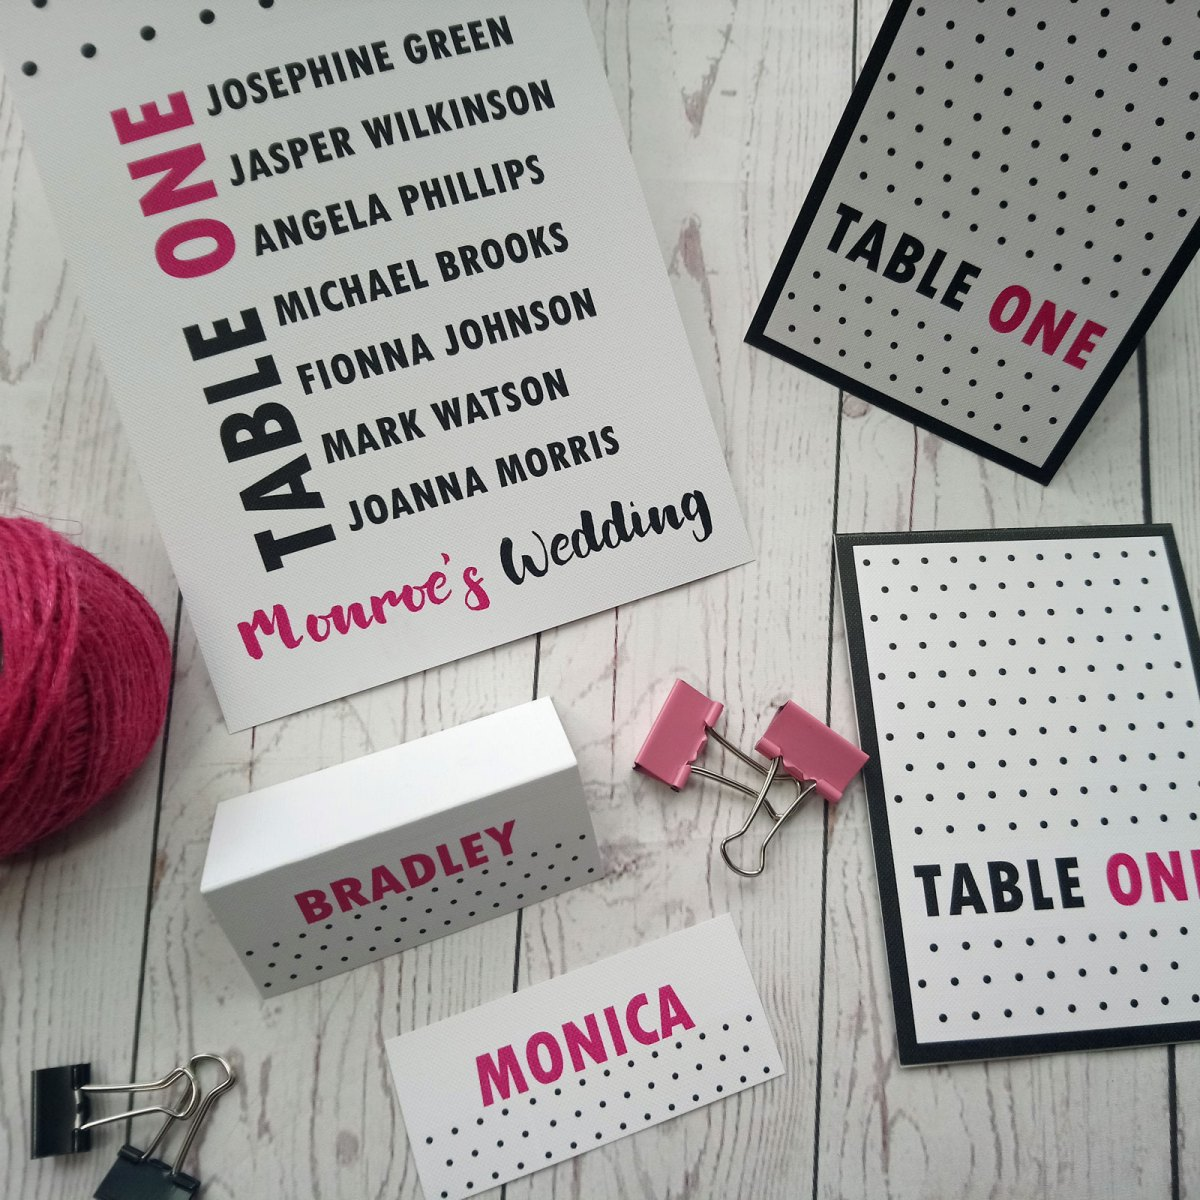 Polka Dot Table Items in the polka dot retro style in vibrant pink and black